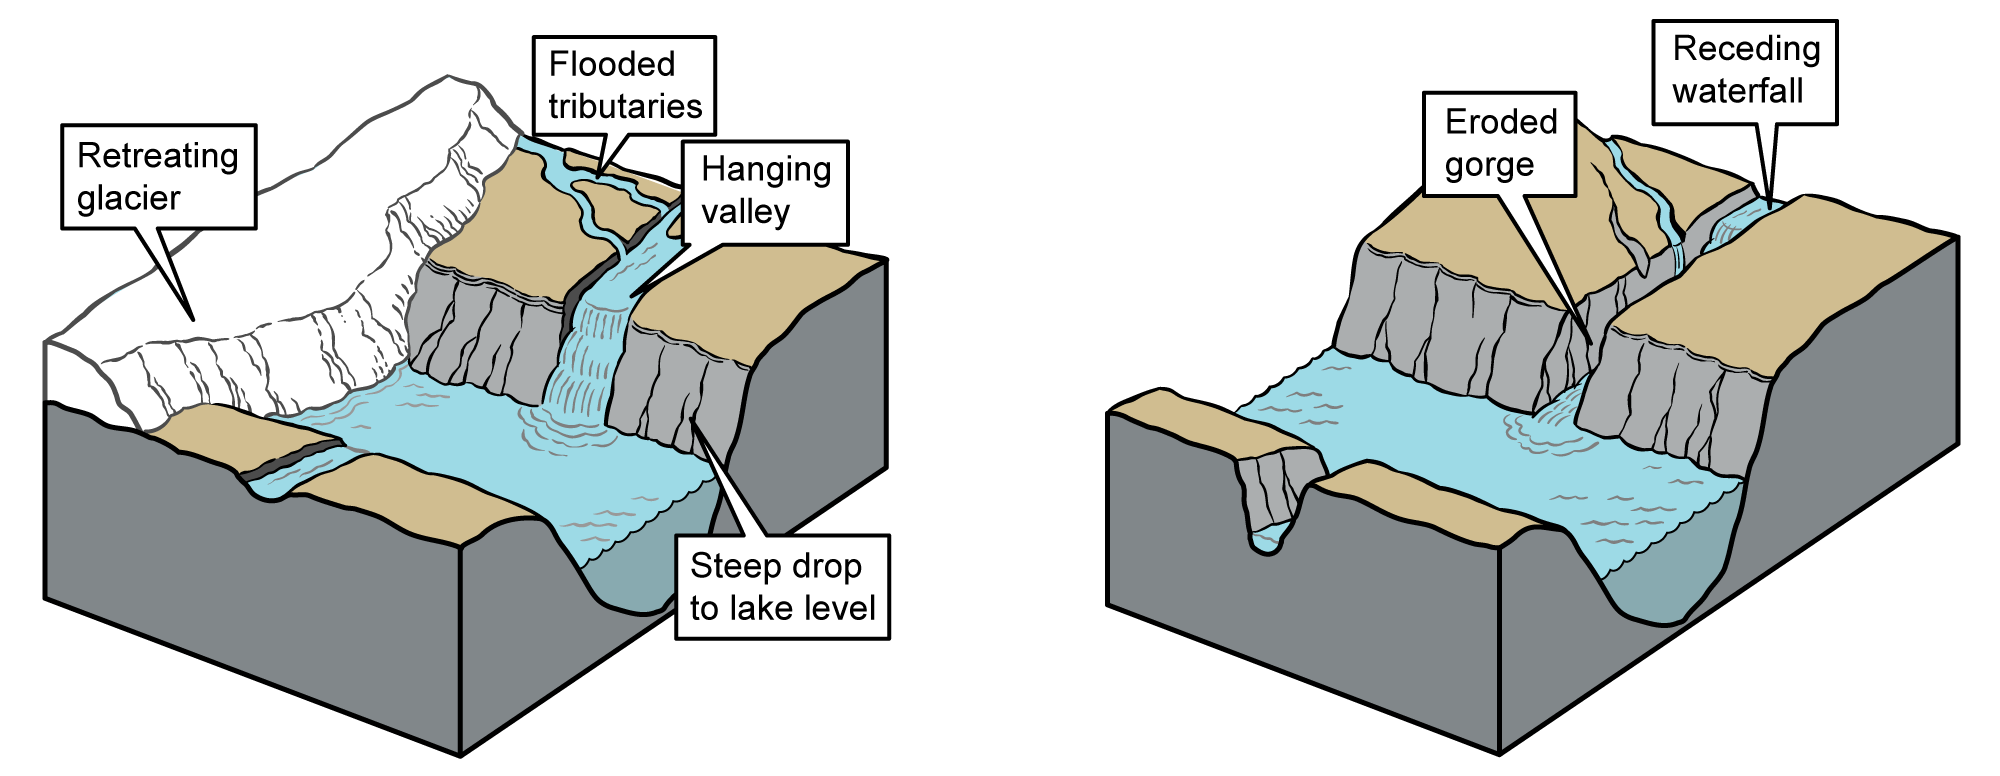 Two images showing how gorges similar to Taughannock Falls formed.